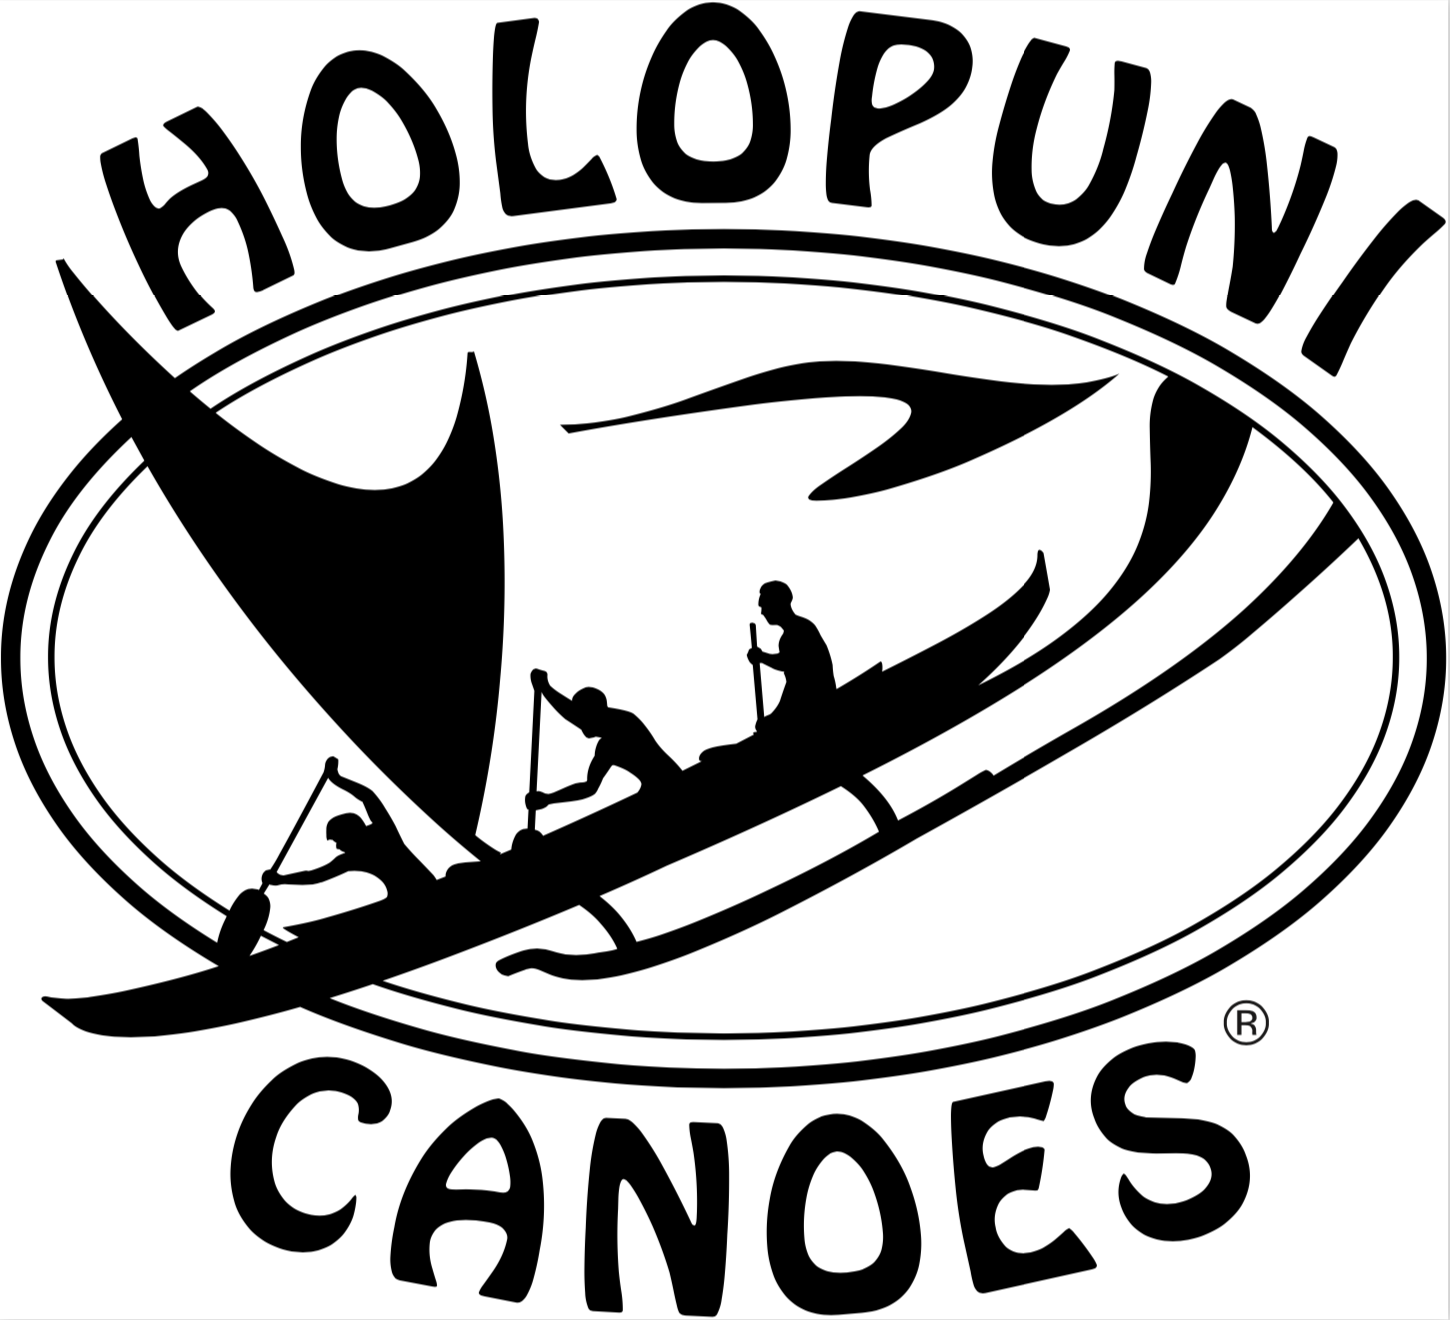 Hawaiian canoe clipart image freeuse stock Holopuni Canoes image freeuse stock